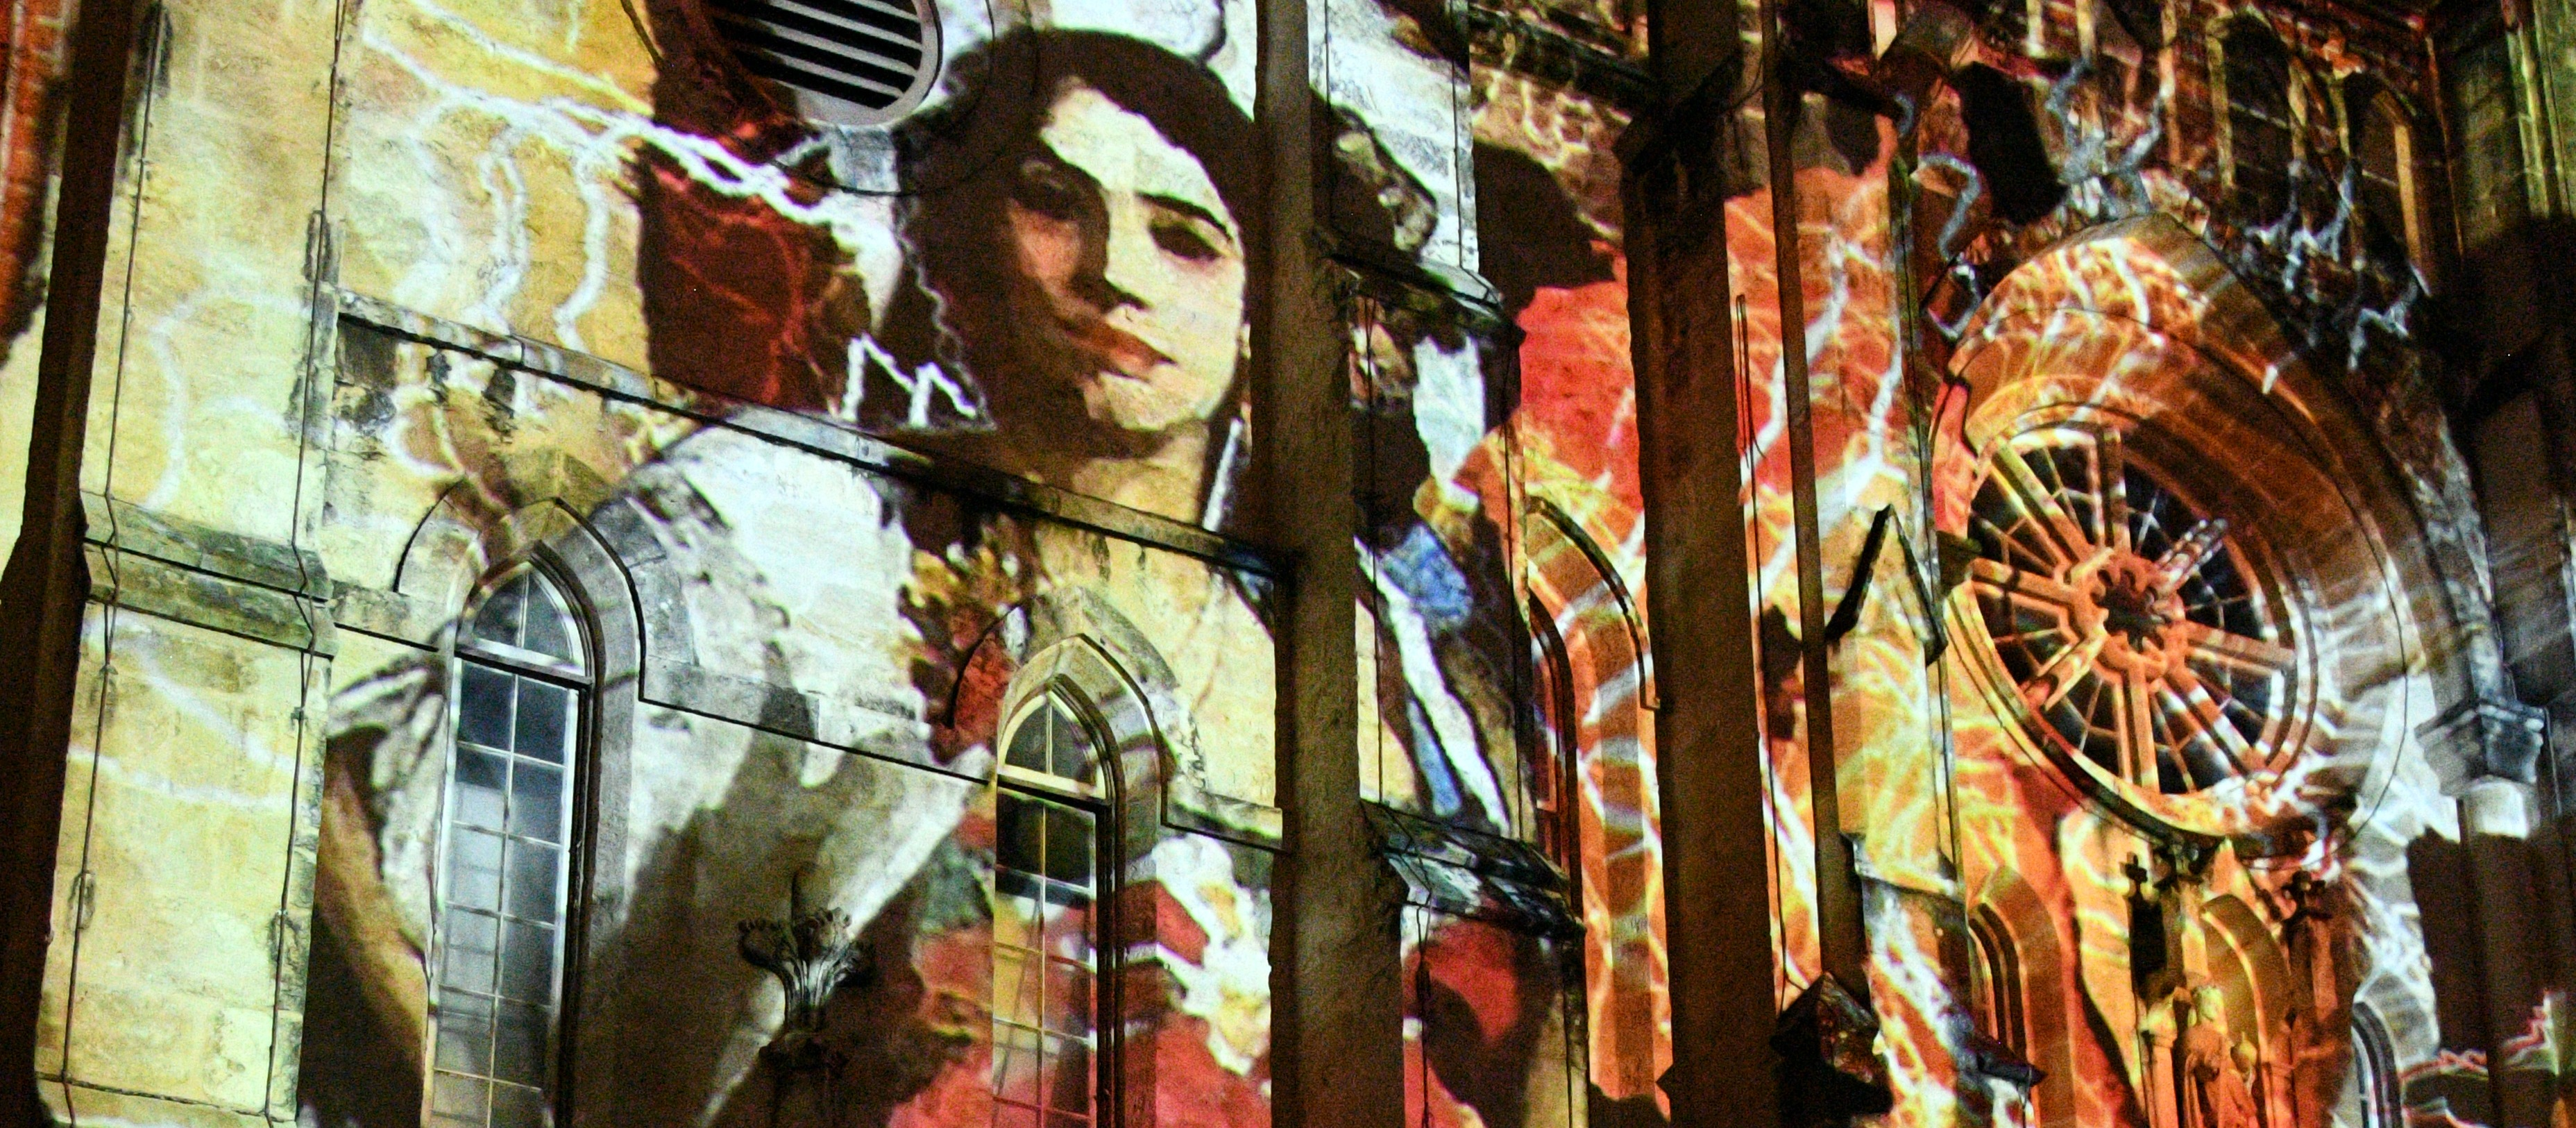 an image of a woman projected onto a church